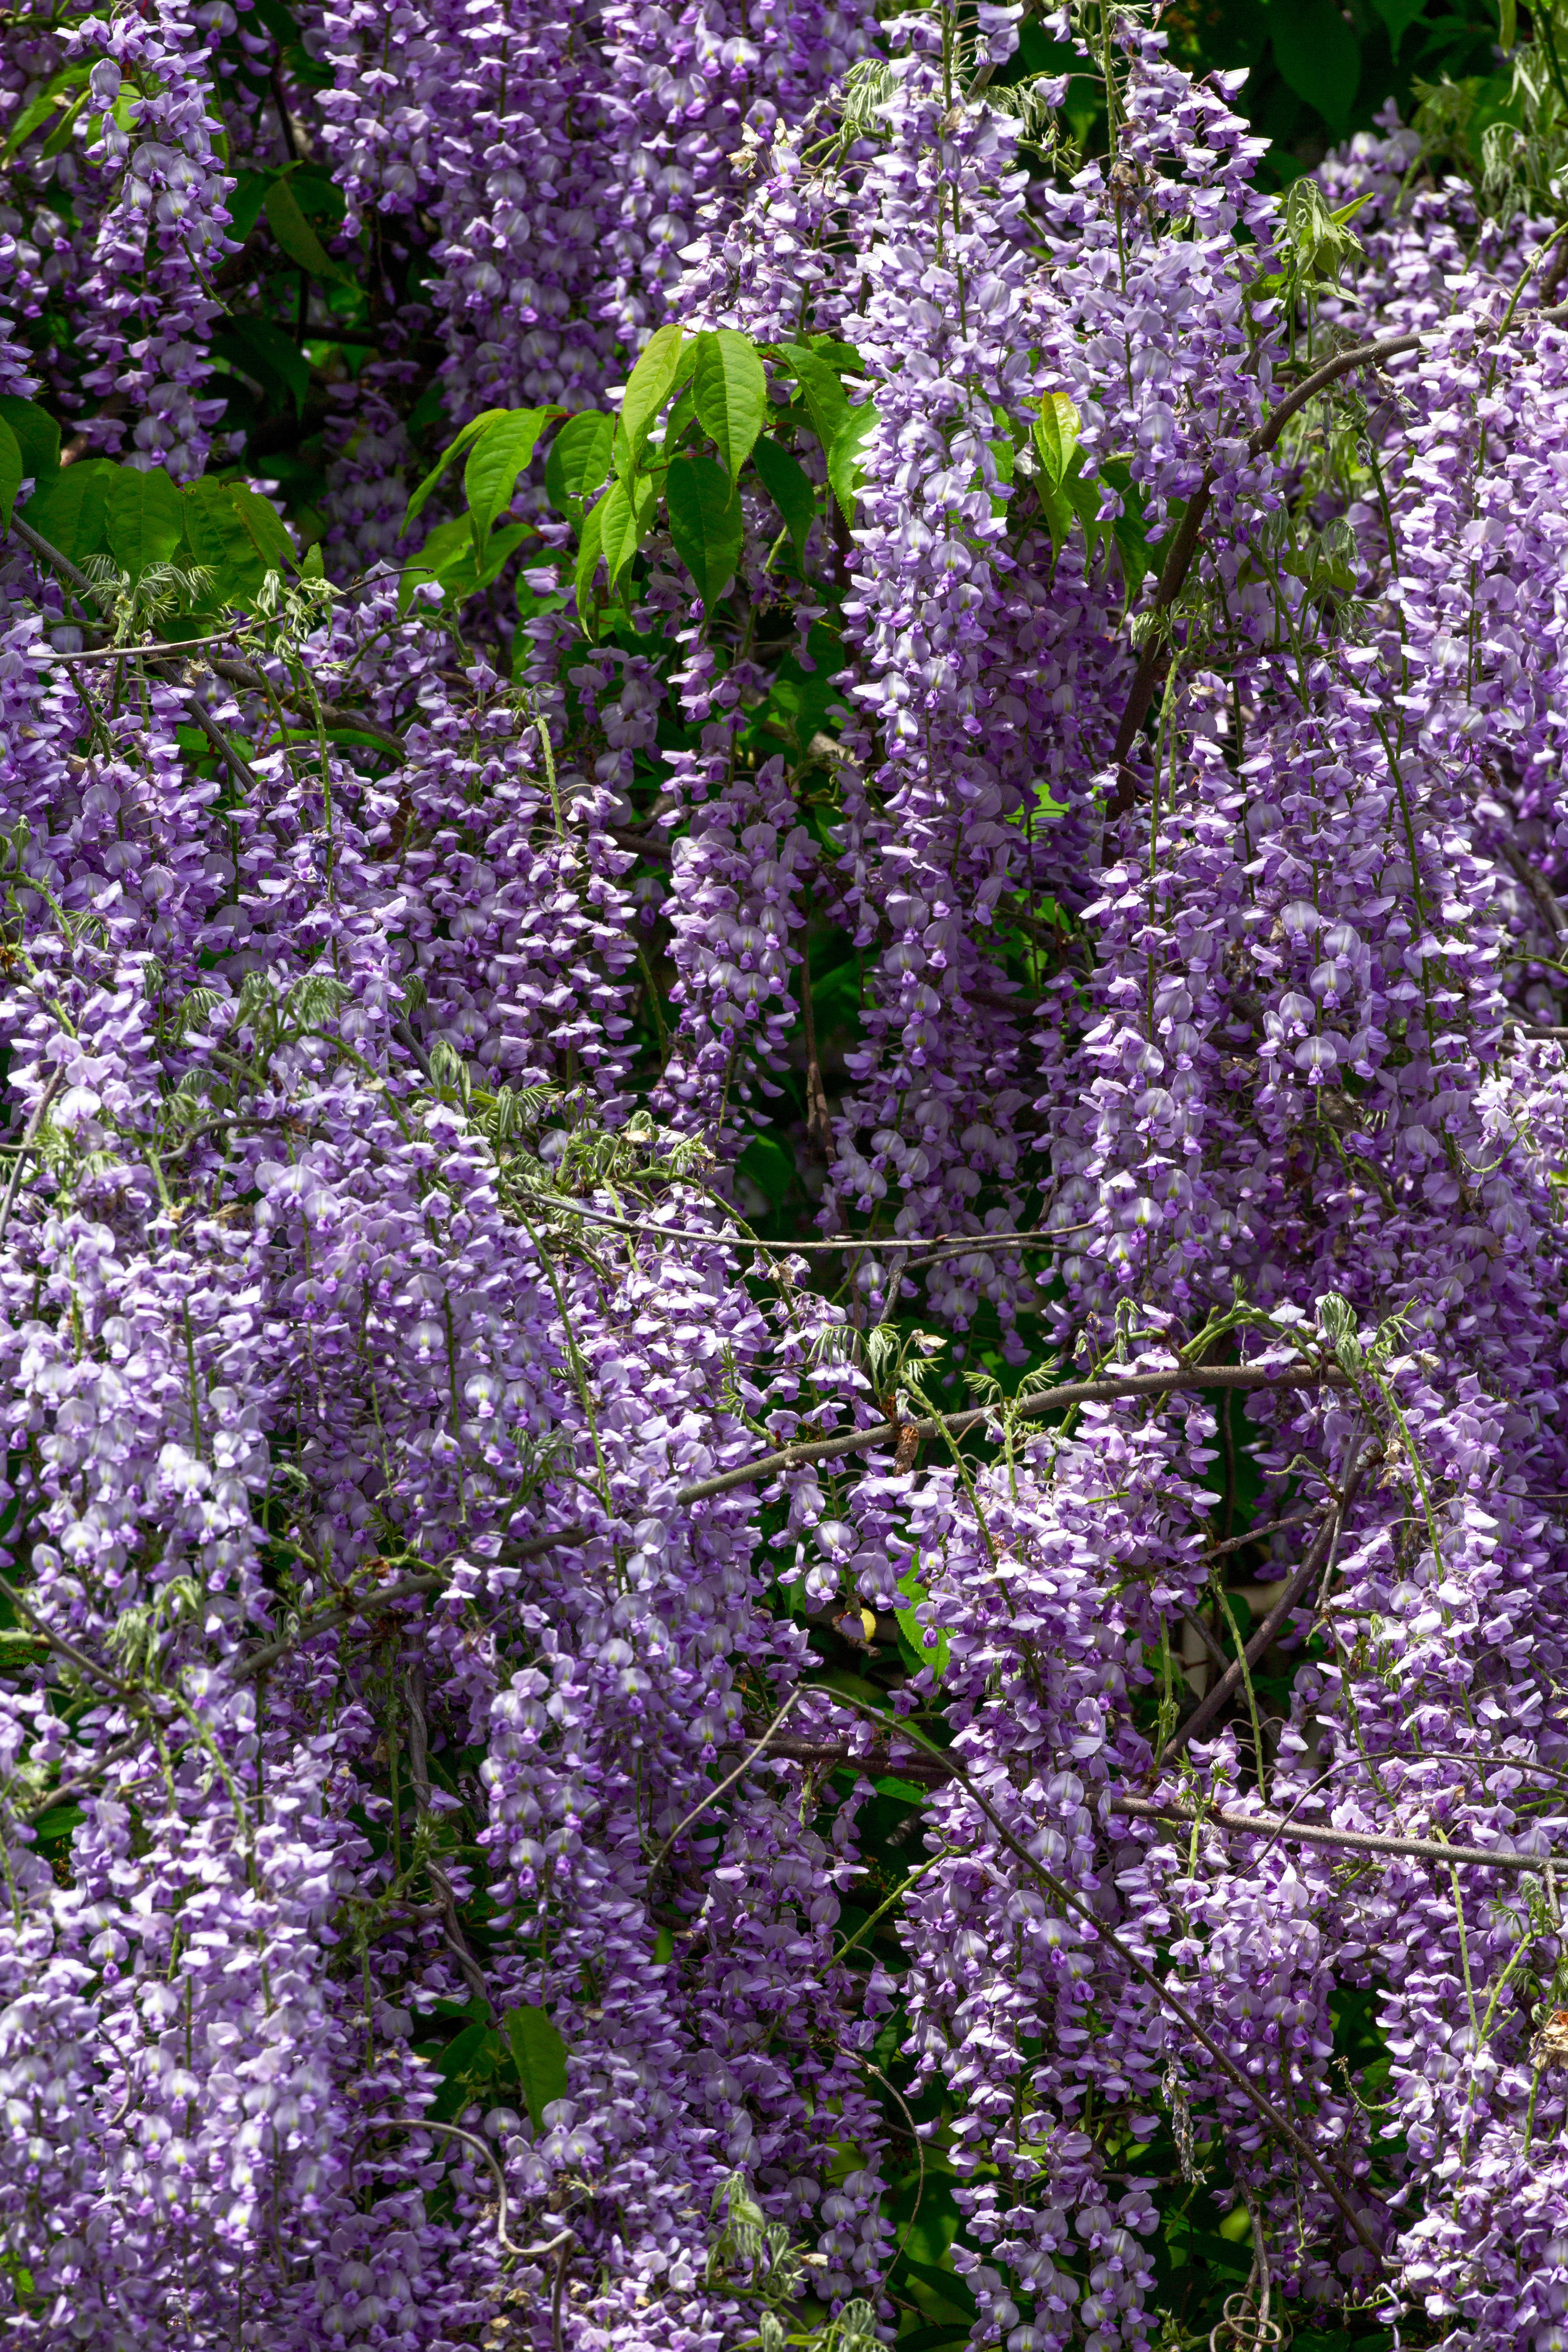 WATCH: Why We Love Wisteria